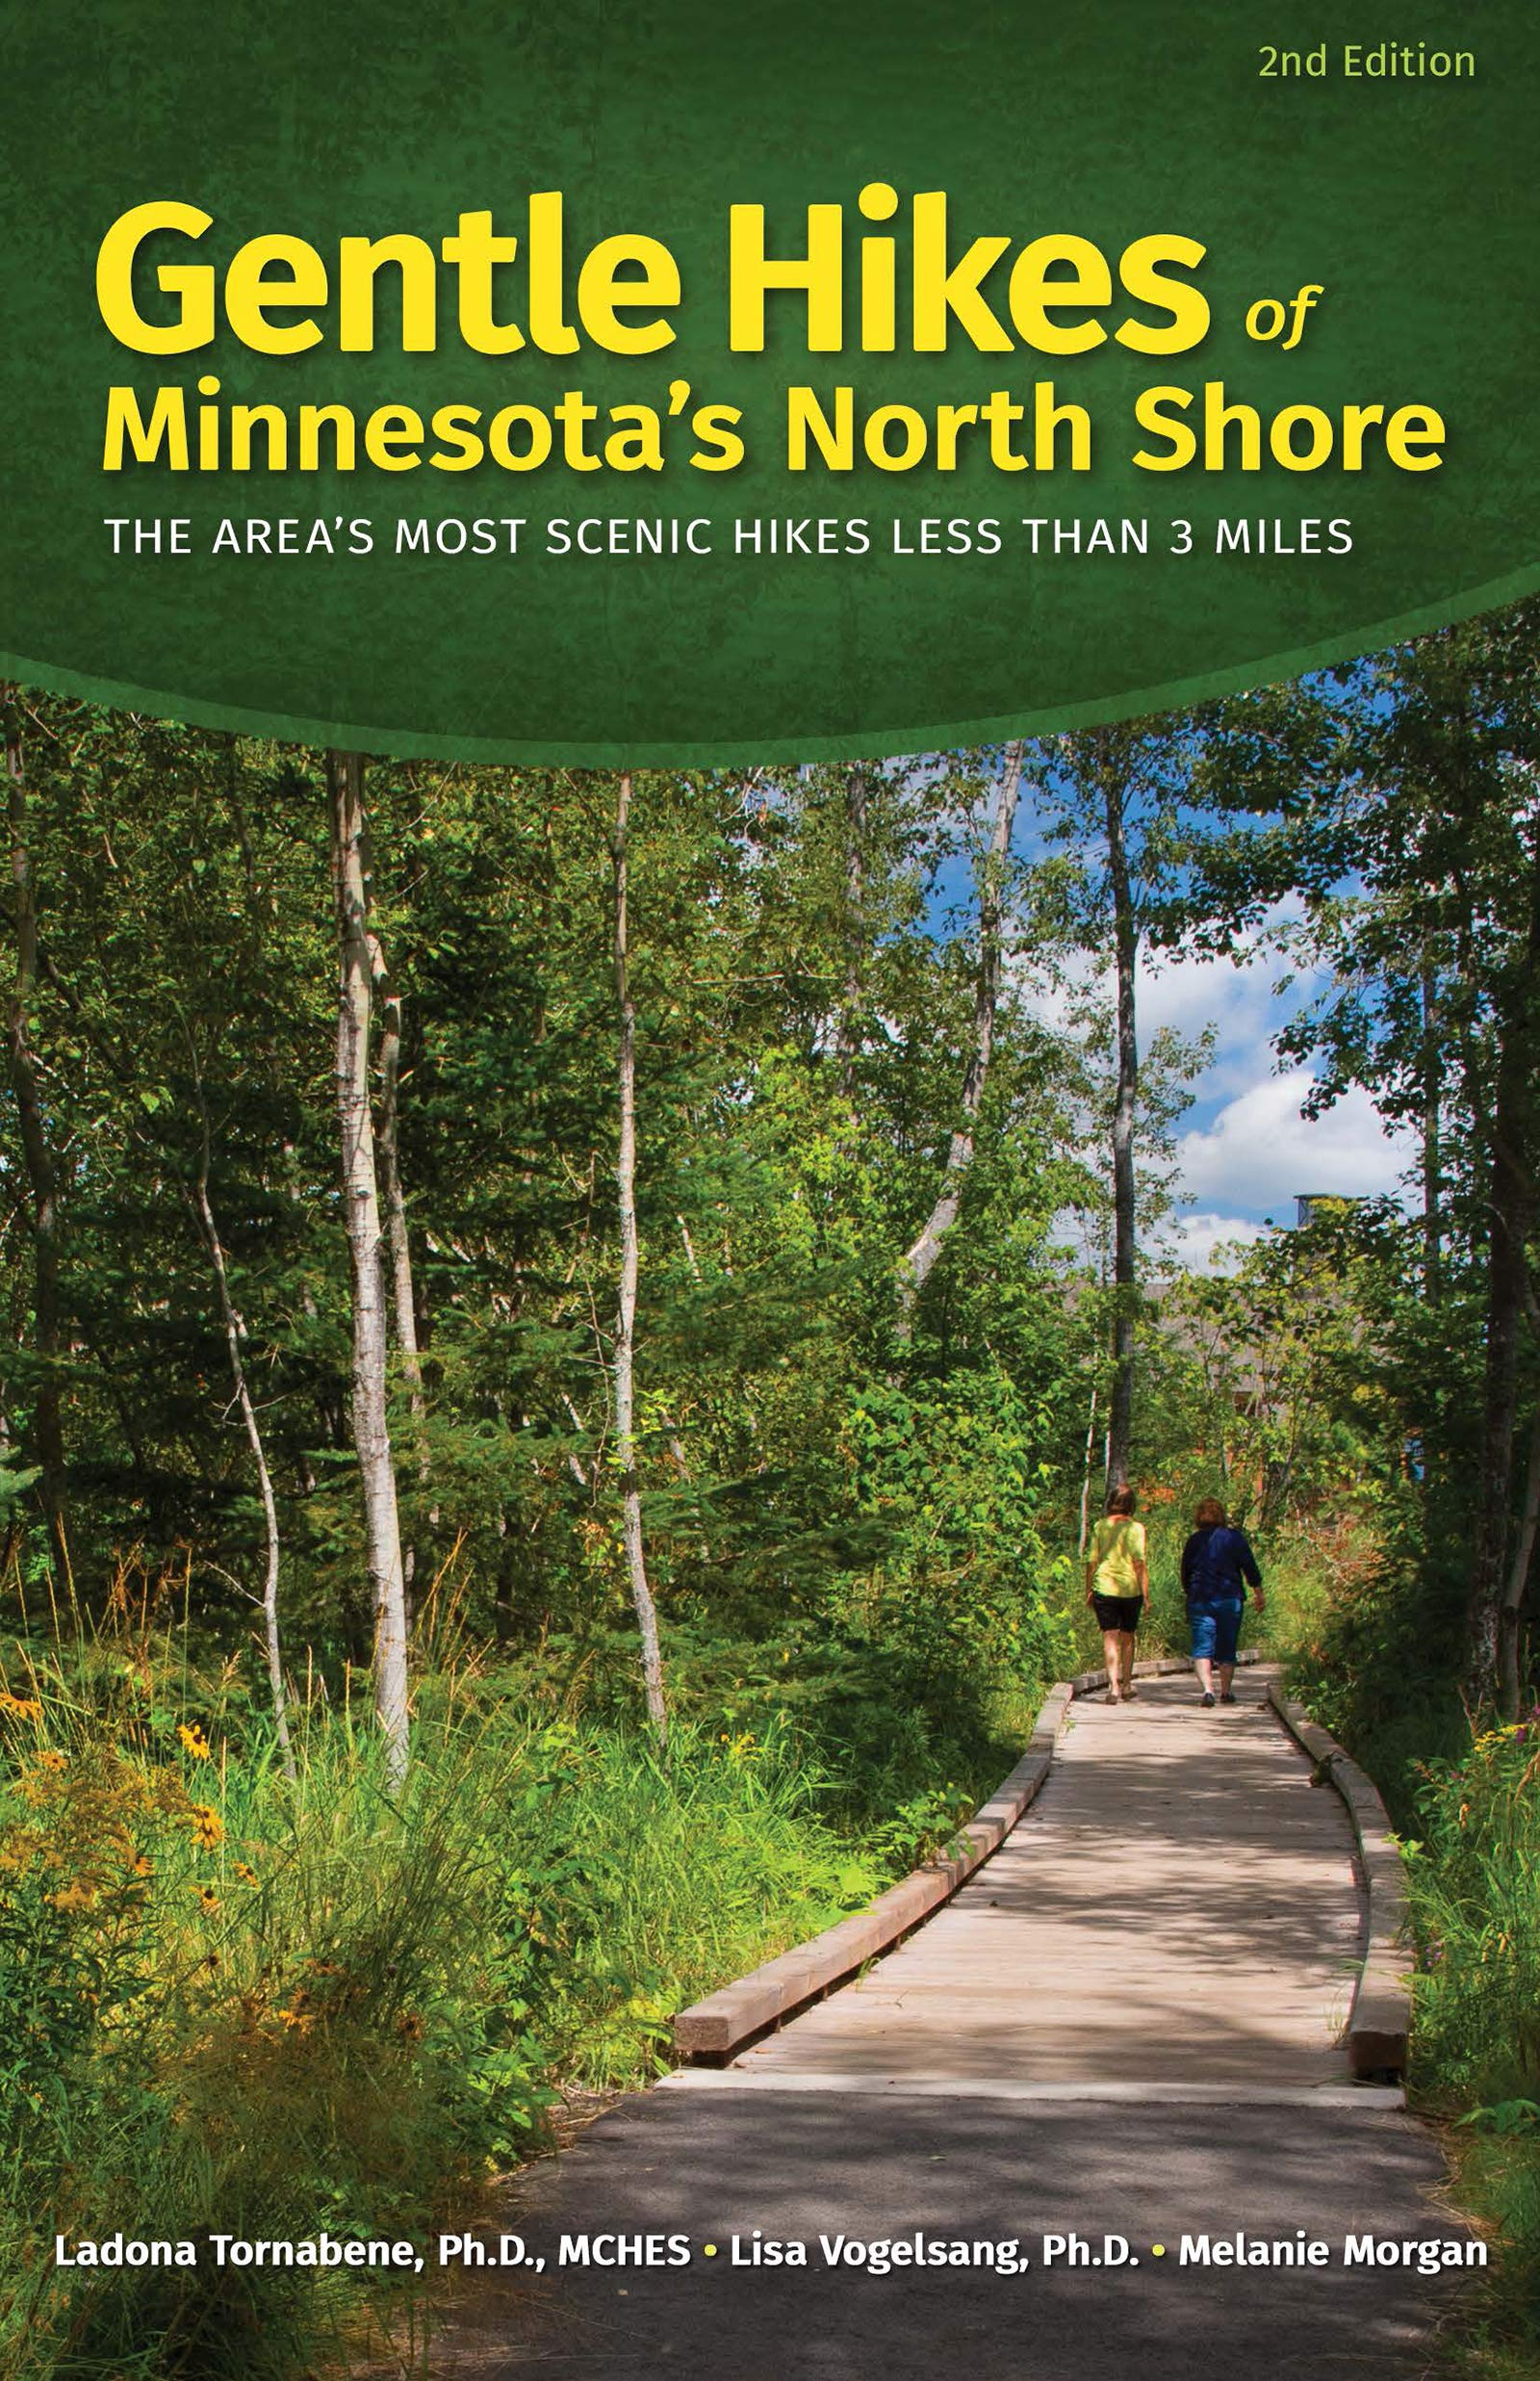 Amazon.com: Gentle Hikes of Minnesotas North Shore: The ...